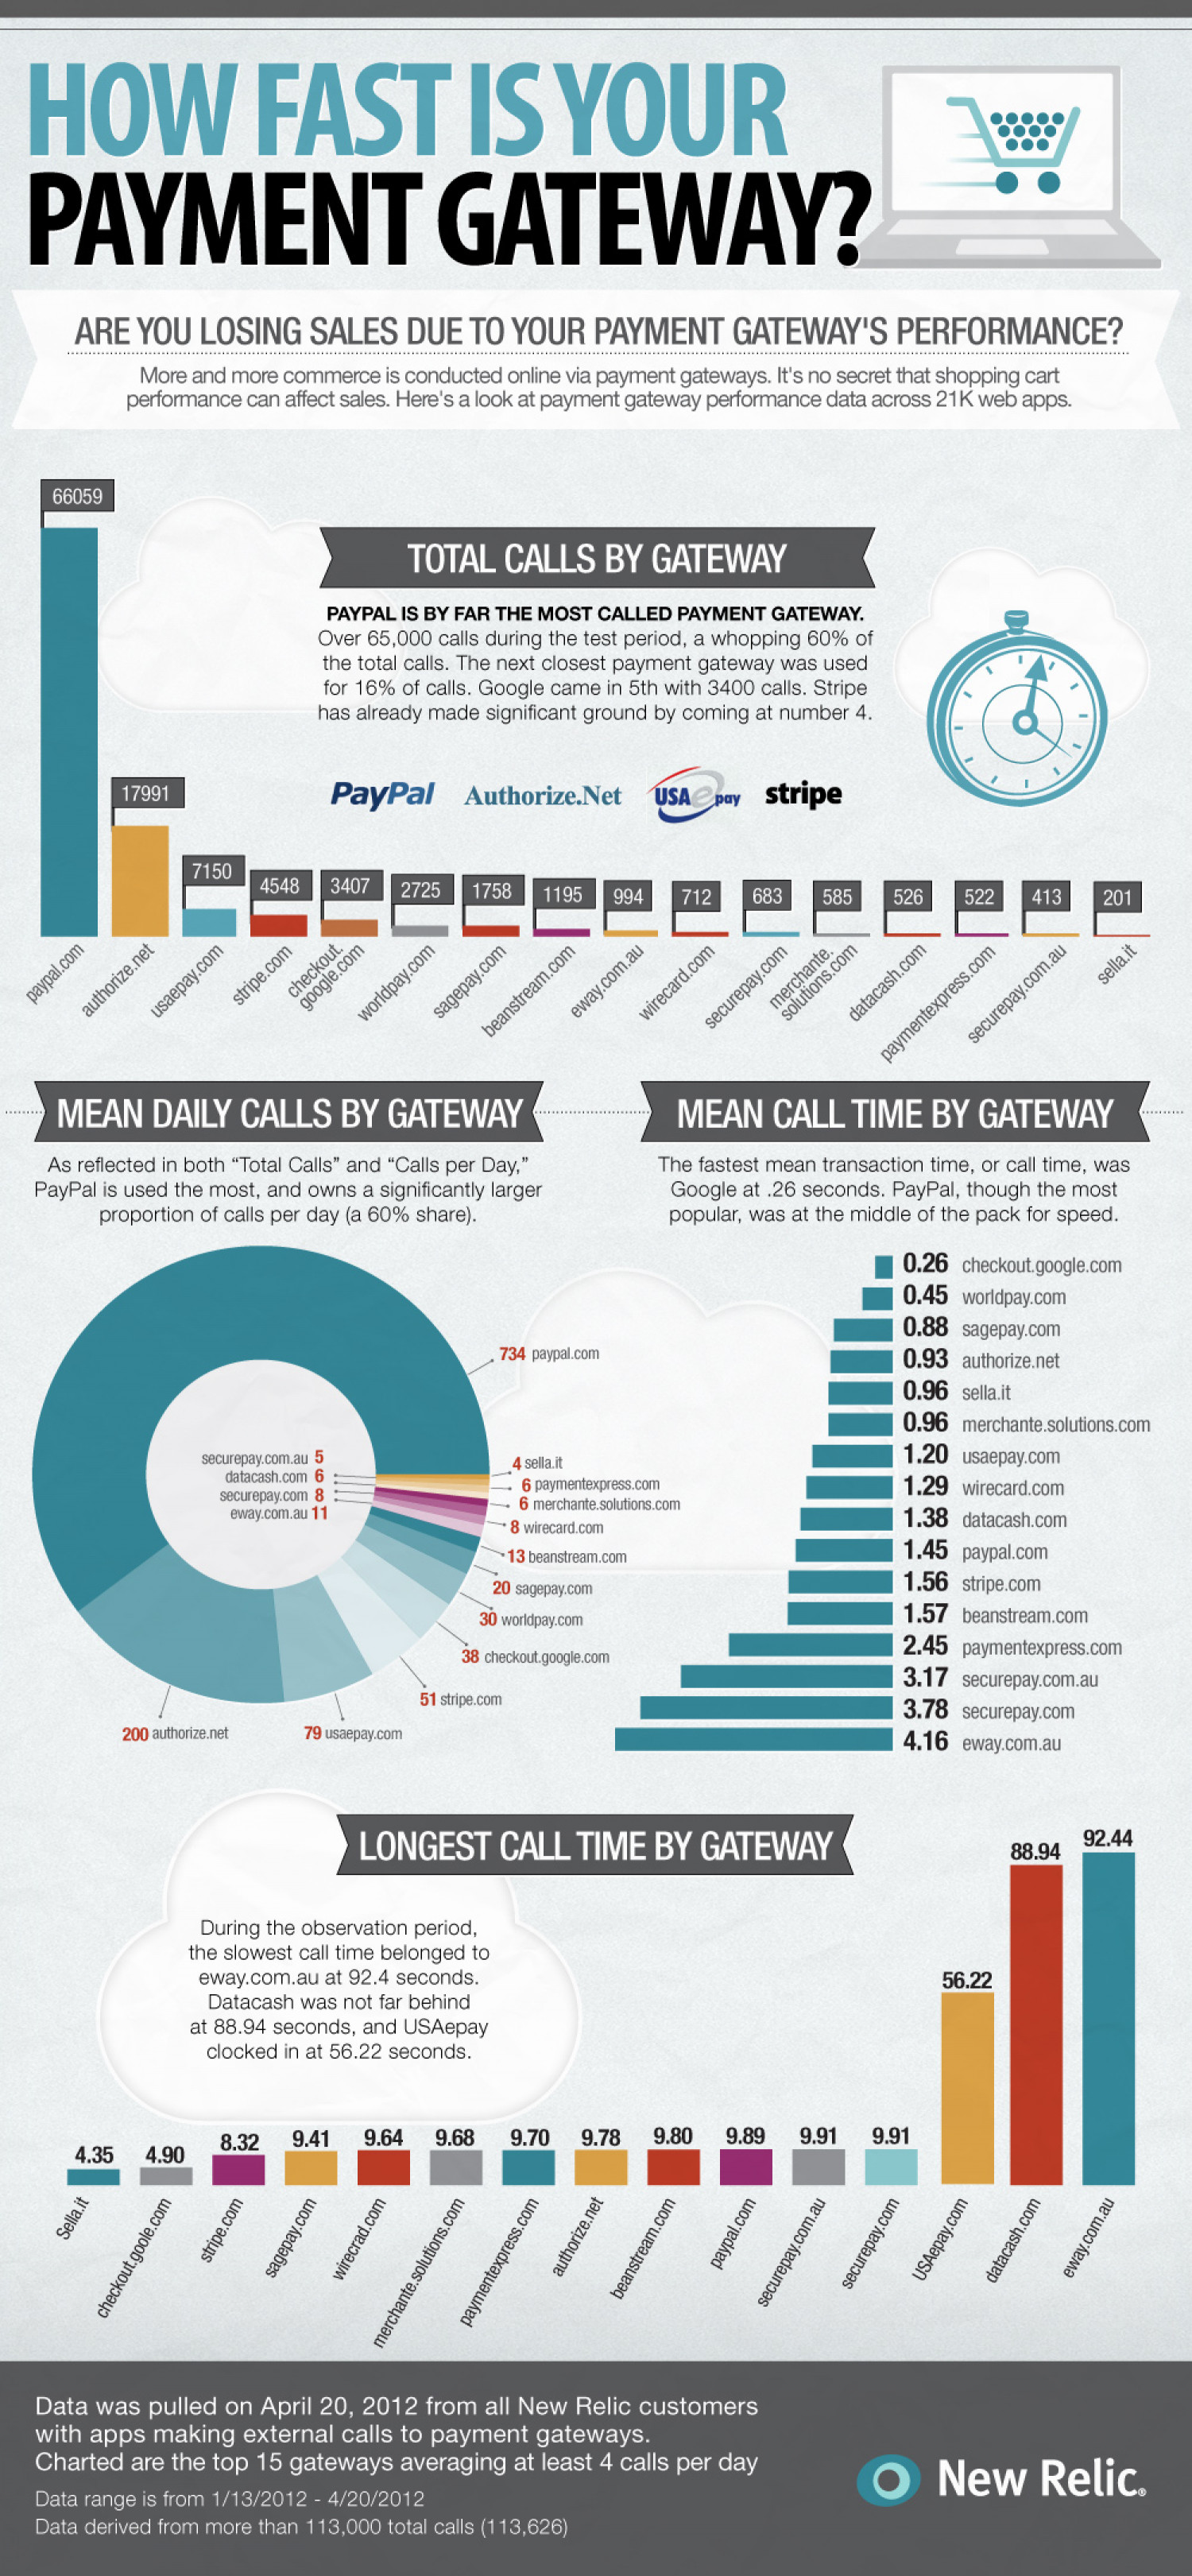 How Fast is Your Payment Gateway? Infographic